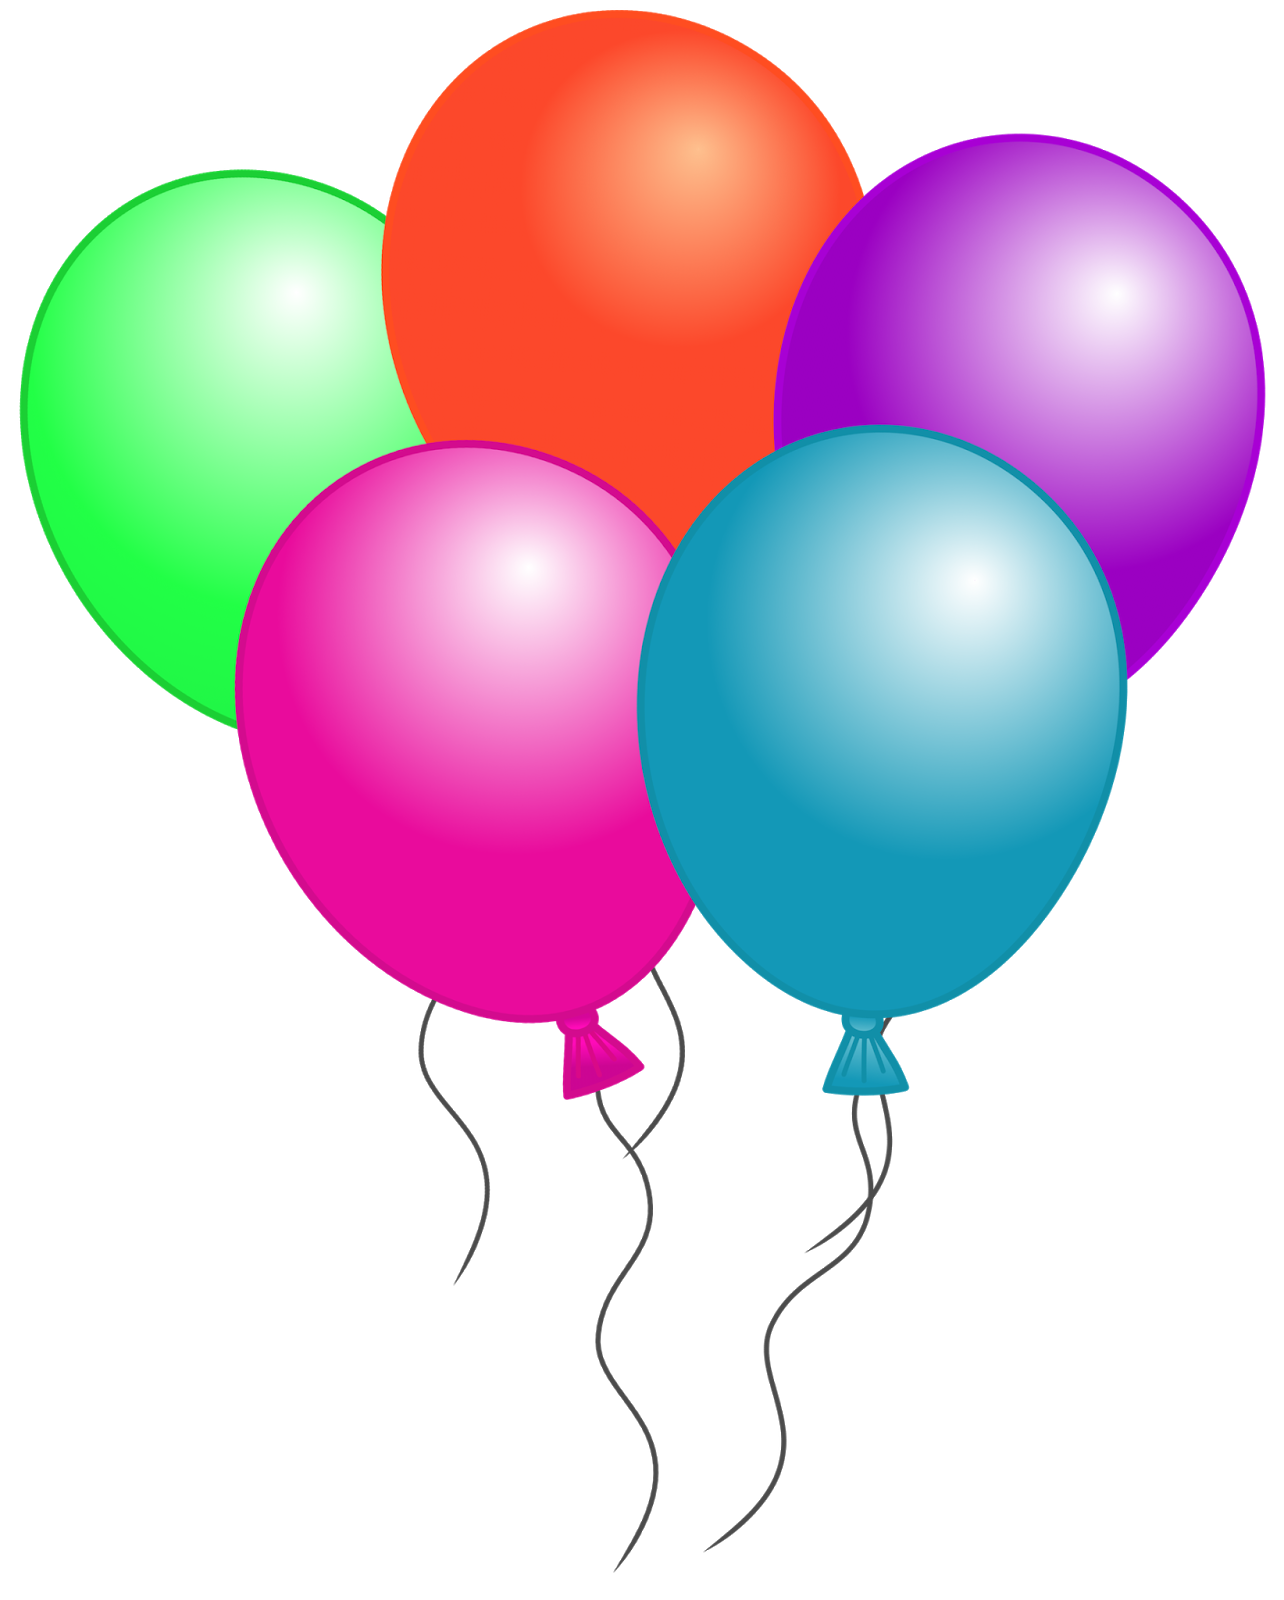 1284x1600 Balloons clip art transparent background free 3